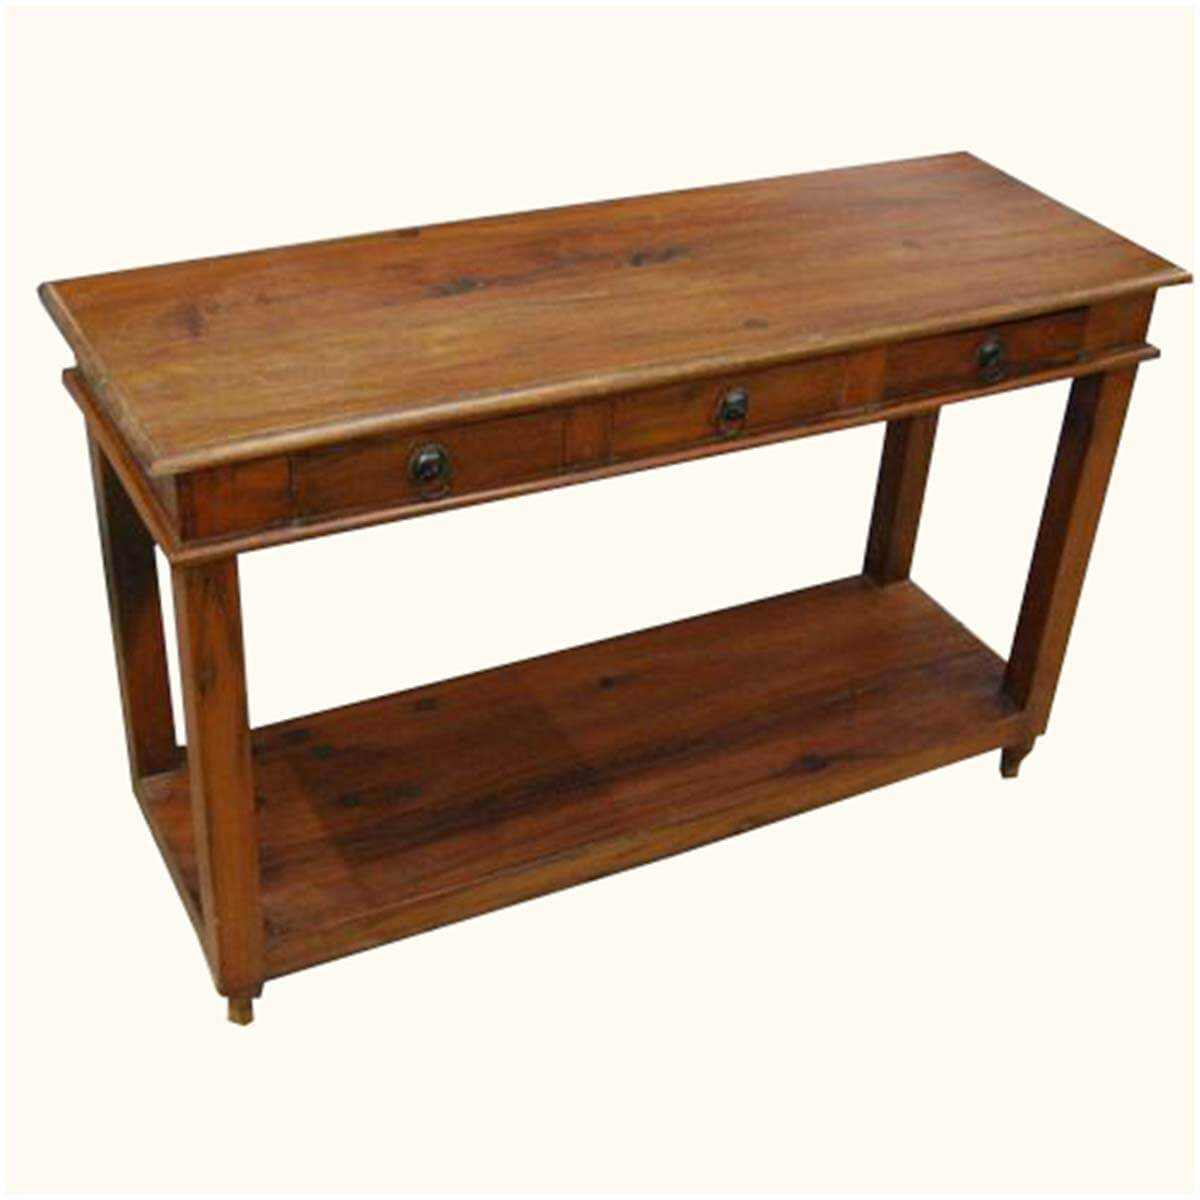 Superb img of Solid Wood Entry Sofa Hall Console Foyer Table w 3 Drawers with #B27F19 color and 1200x1200 pixels